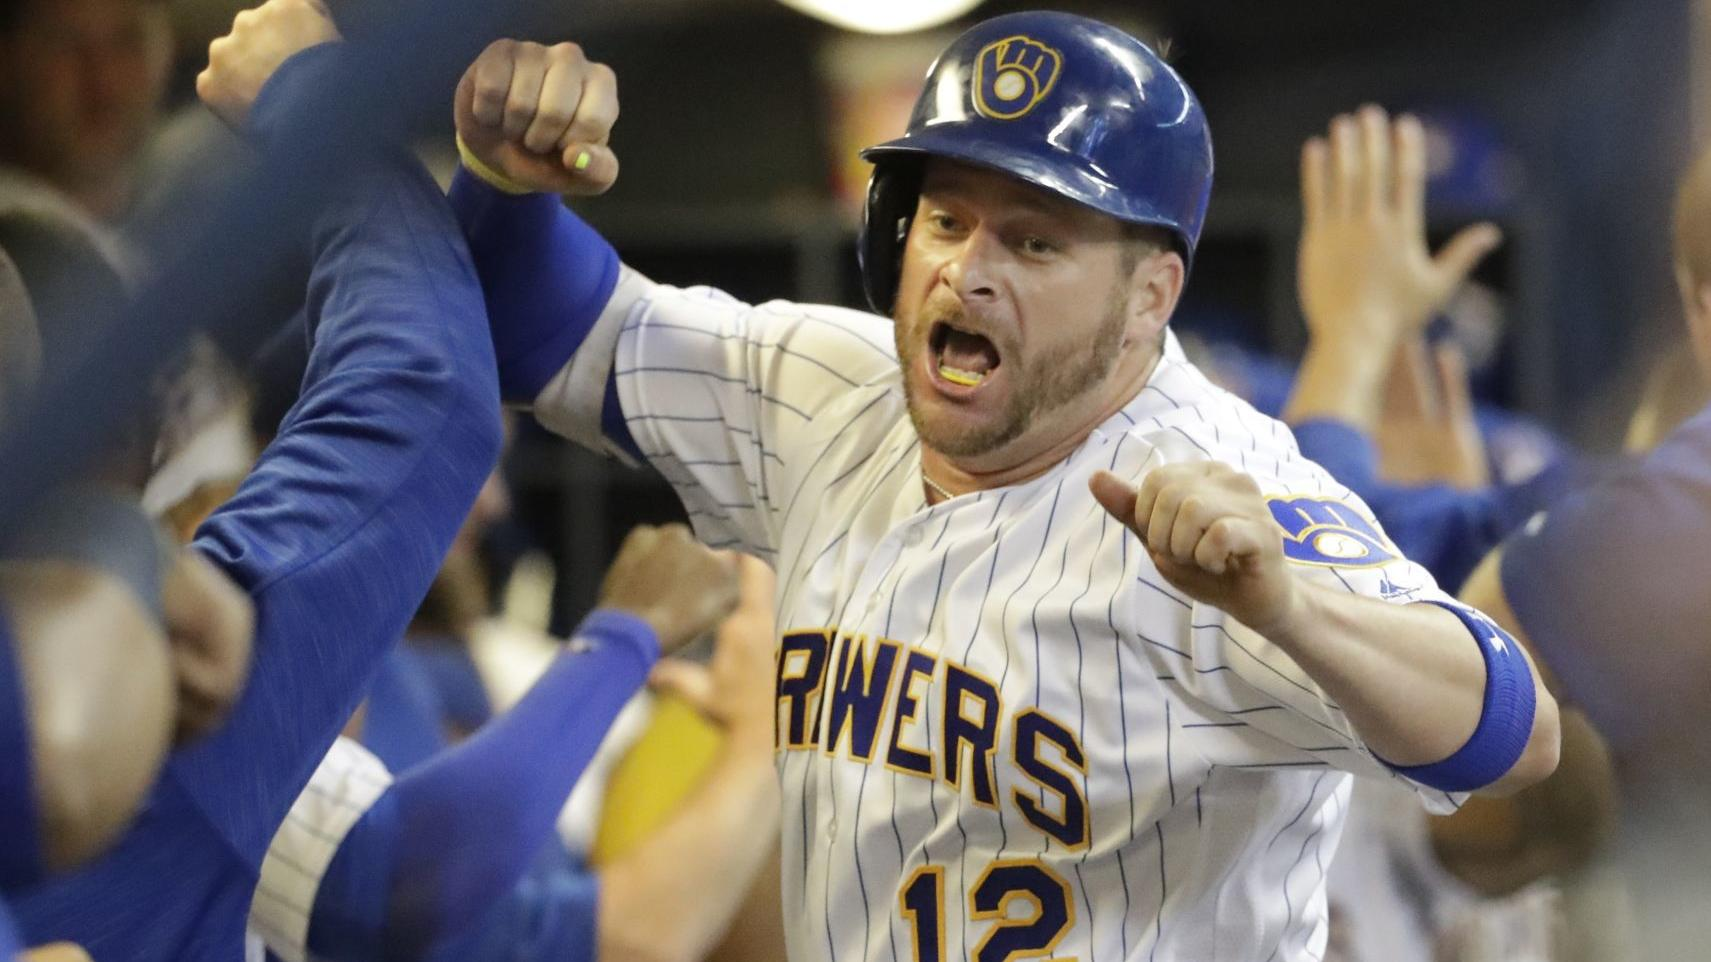 After injury kept him from playing for Brewers in 2018, catcher Stephen Vogt signs Giants